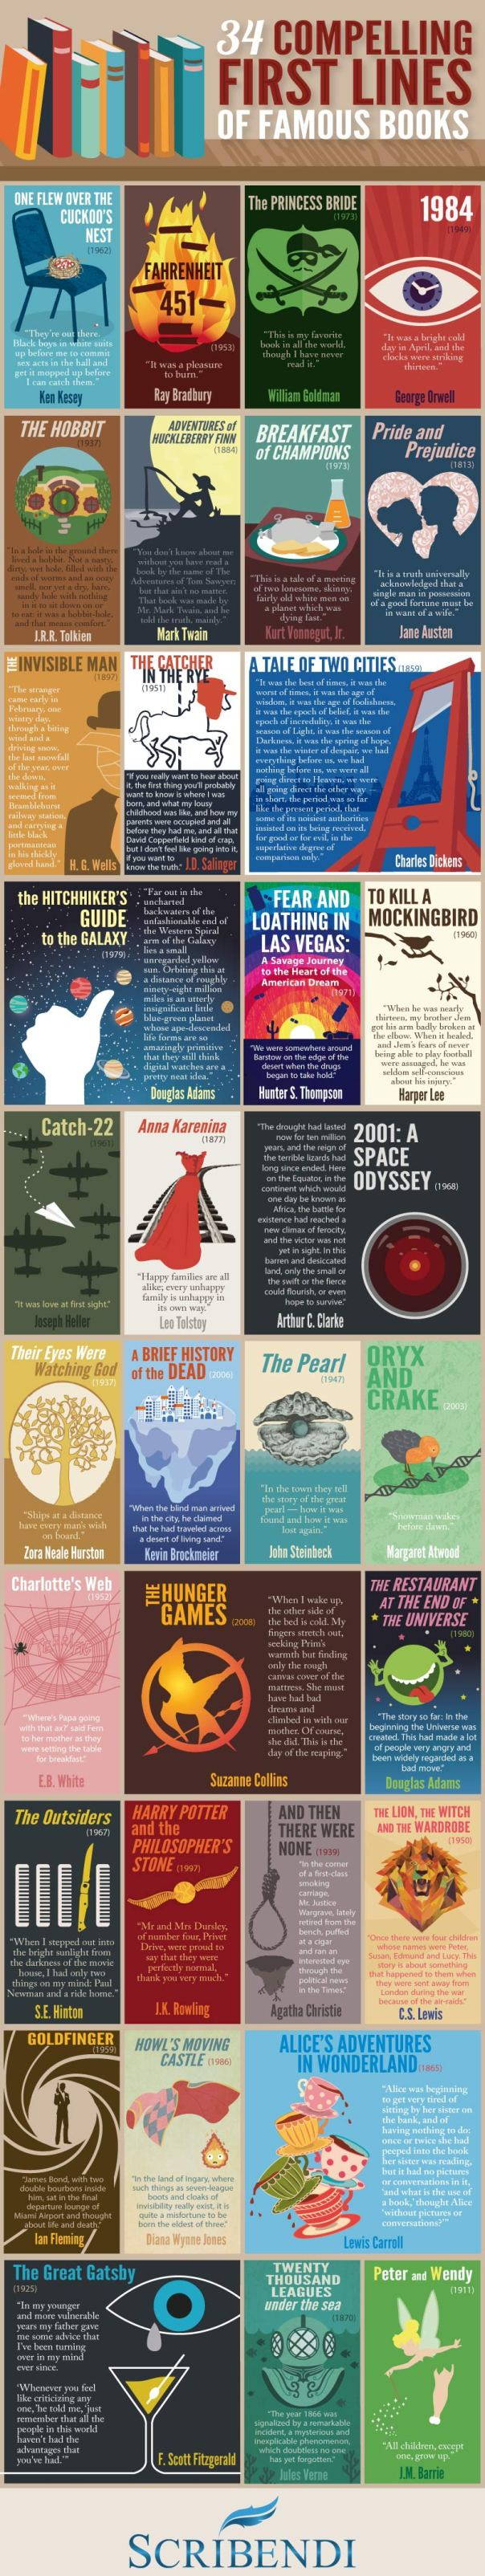 34 Compelling First Lines Infographic